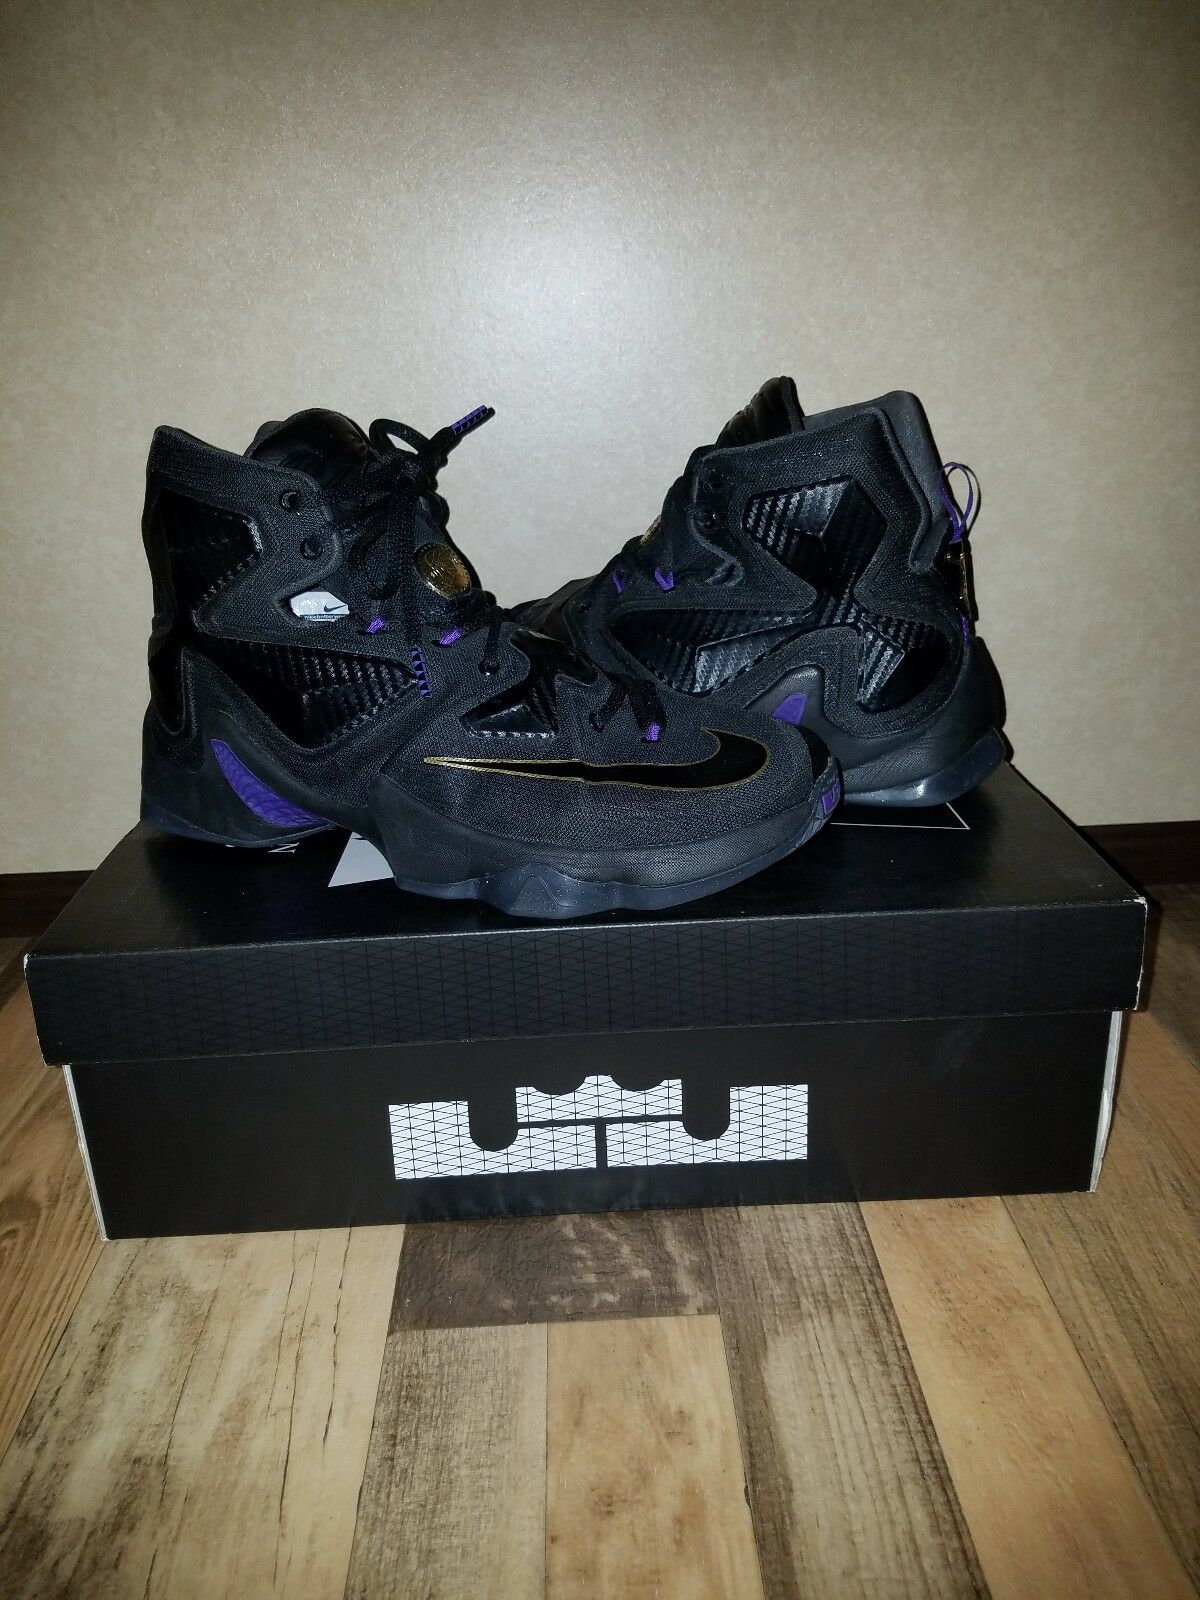 8a10880e538 Nike Lebron XIII 13 Pot Of gold Size Size Size 9.5 56af74 - slippers ...